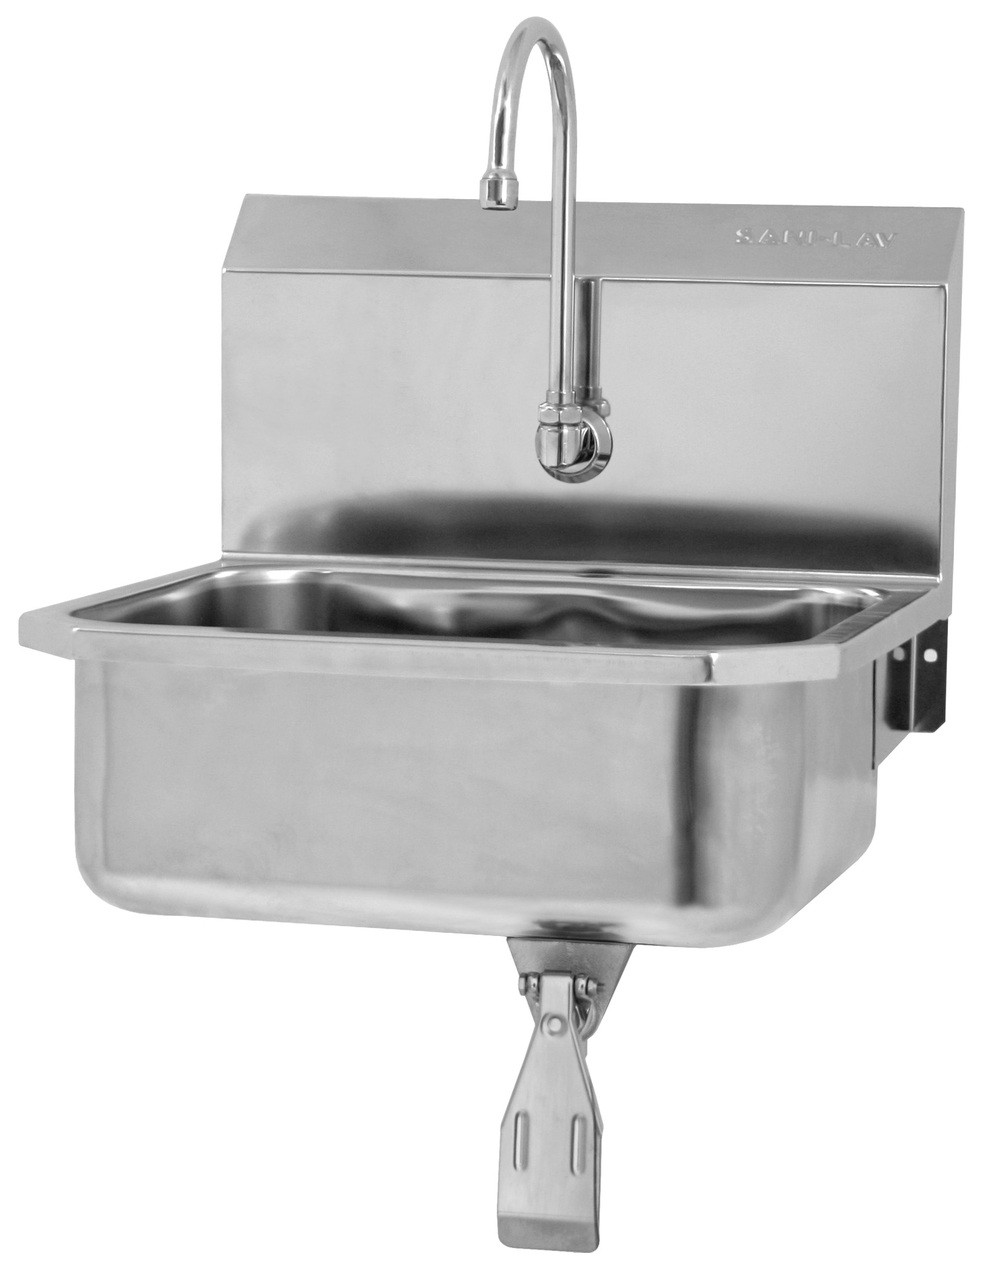 SANI-LAV 5051 Hands Free Sink - Stainless Steel - Wall Mount